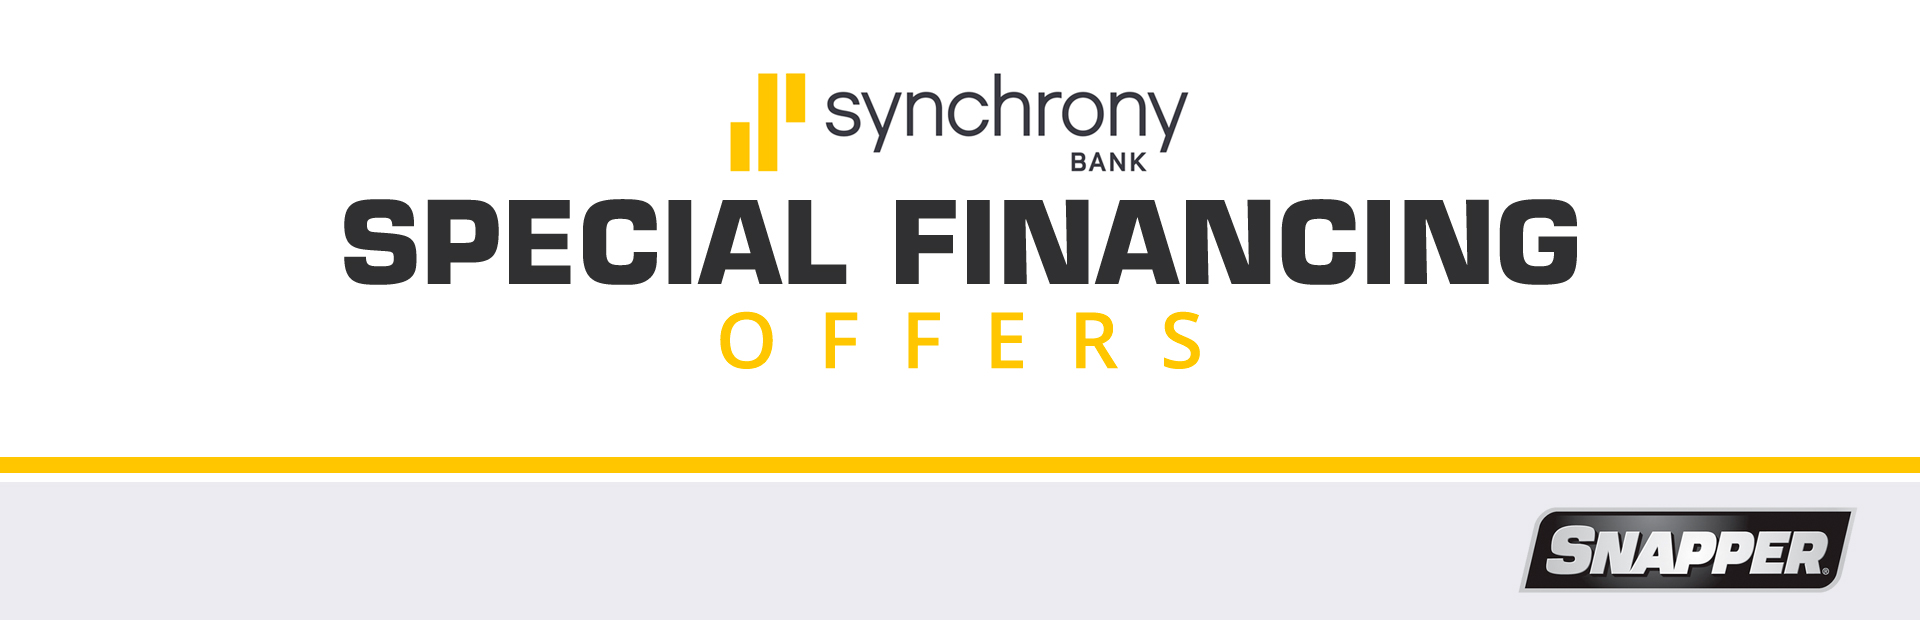 Snapper: Synchrony Bank Special Financing Offers